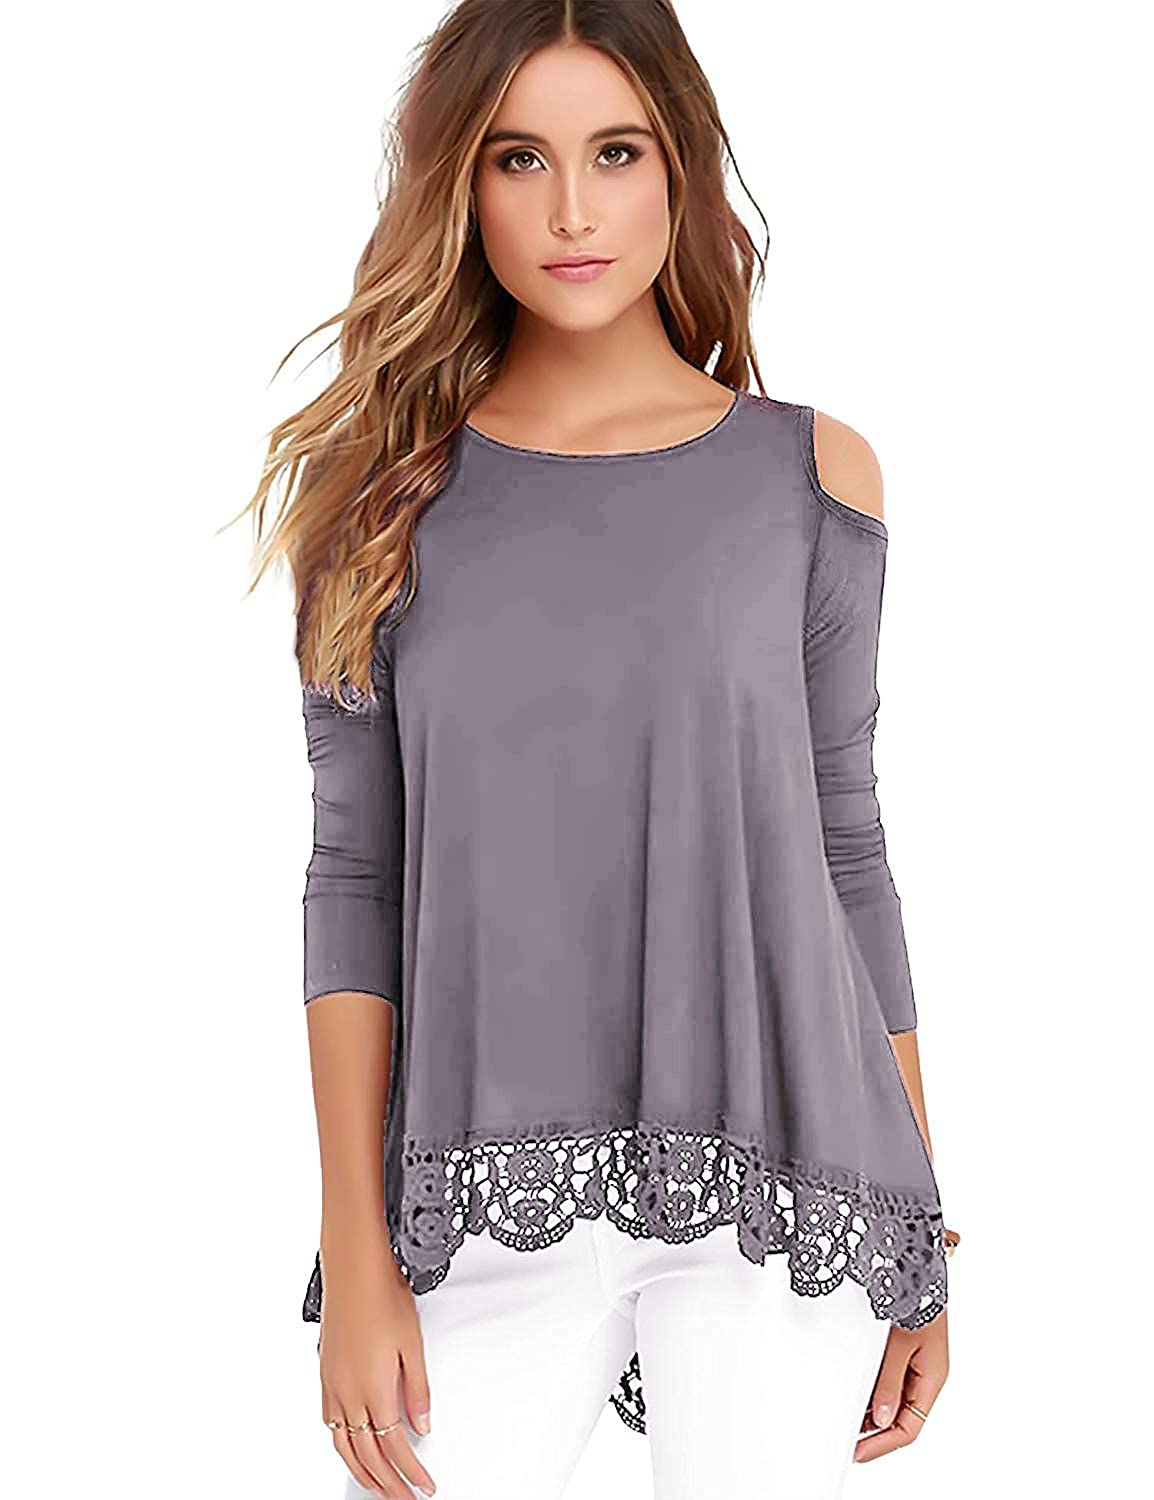 6db8b616c915b6 Bosbary Womens Cold Shoulder Tops Long Sleeve Lace Trim Tunic Blouse at  Amazon Women s Clothing store